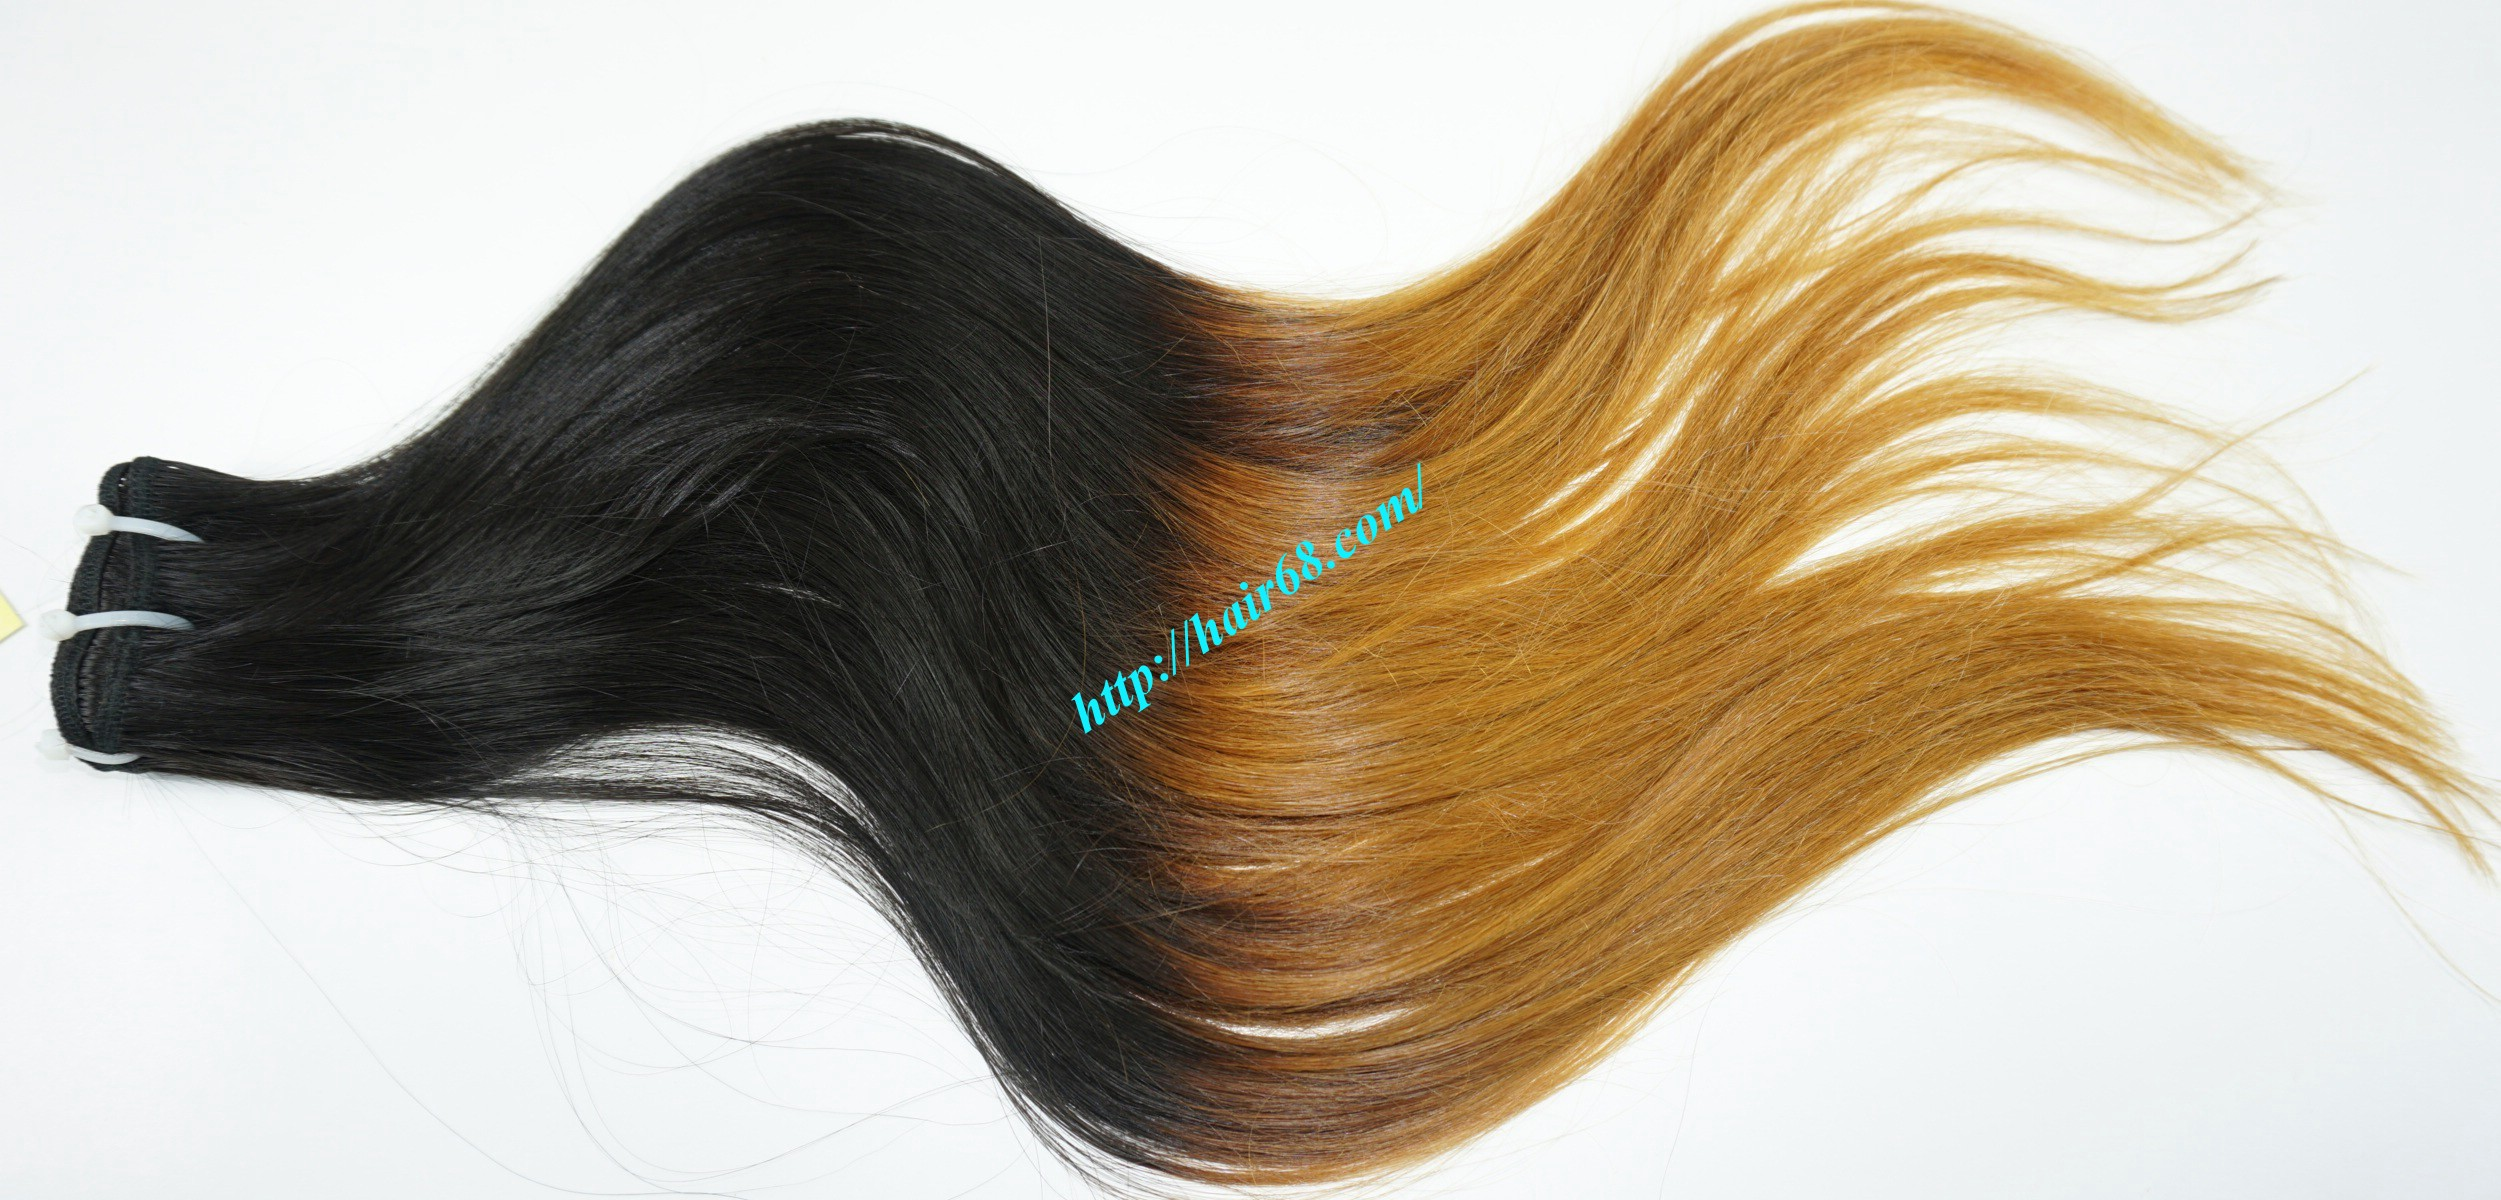 26 inch ombre hair extensions for black hair 5